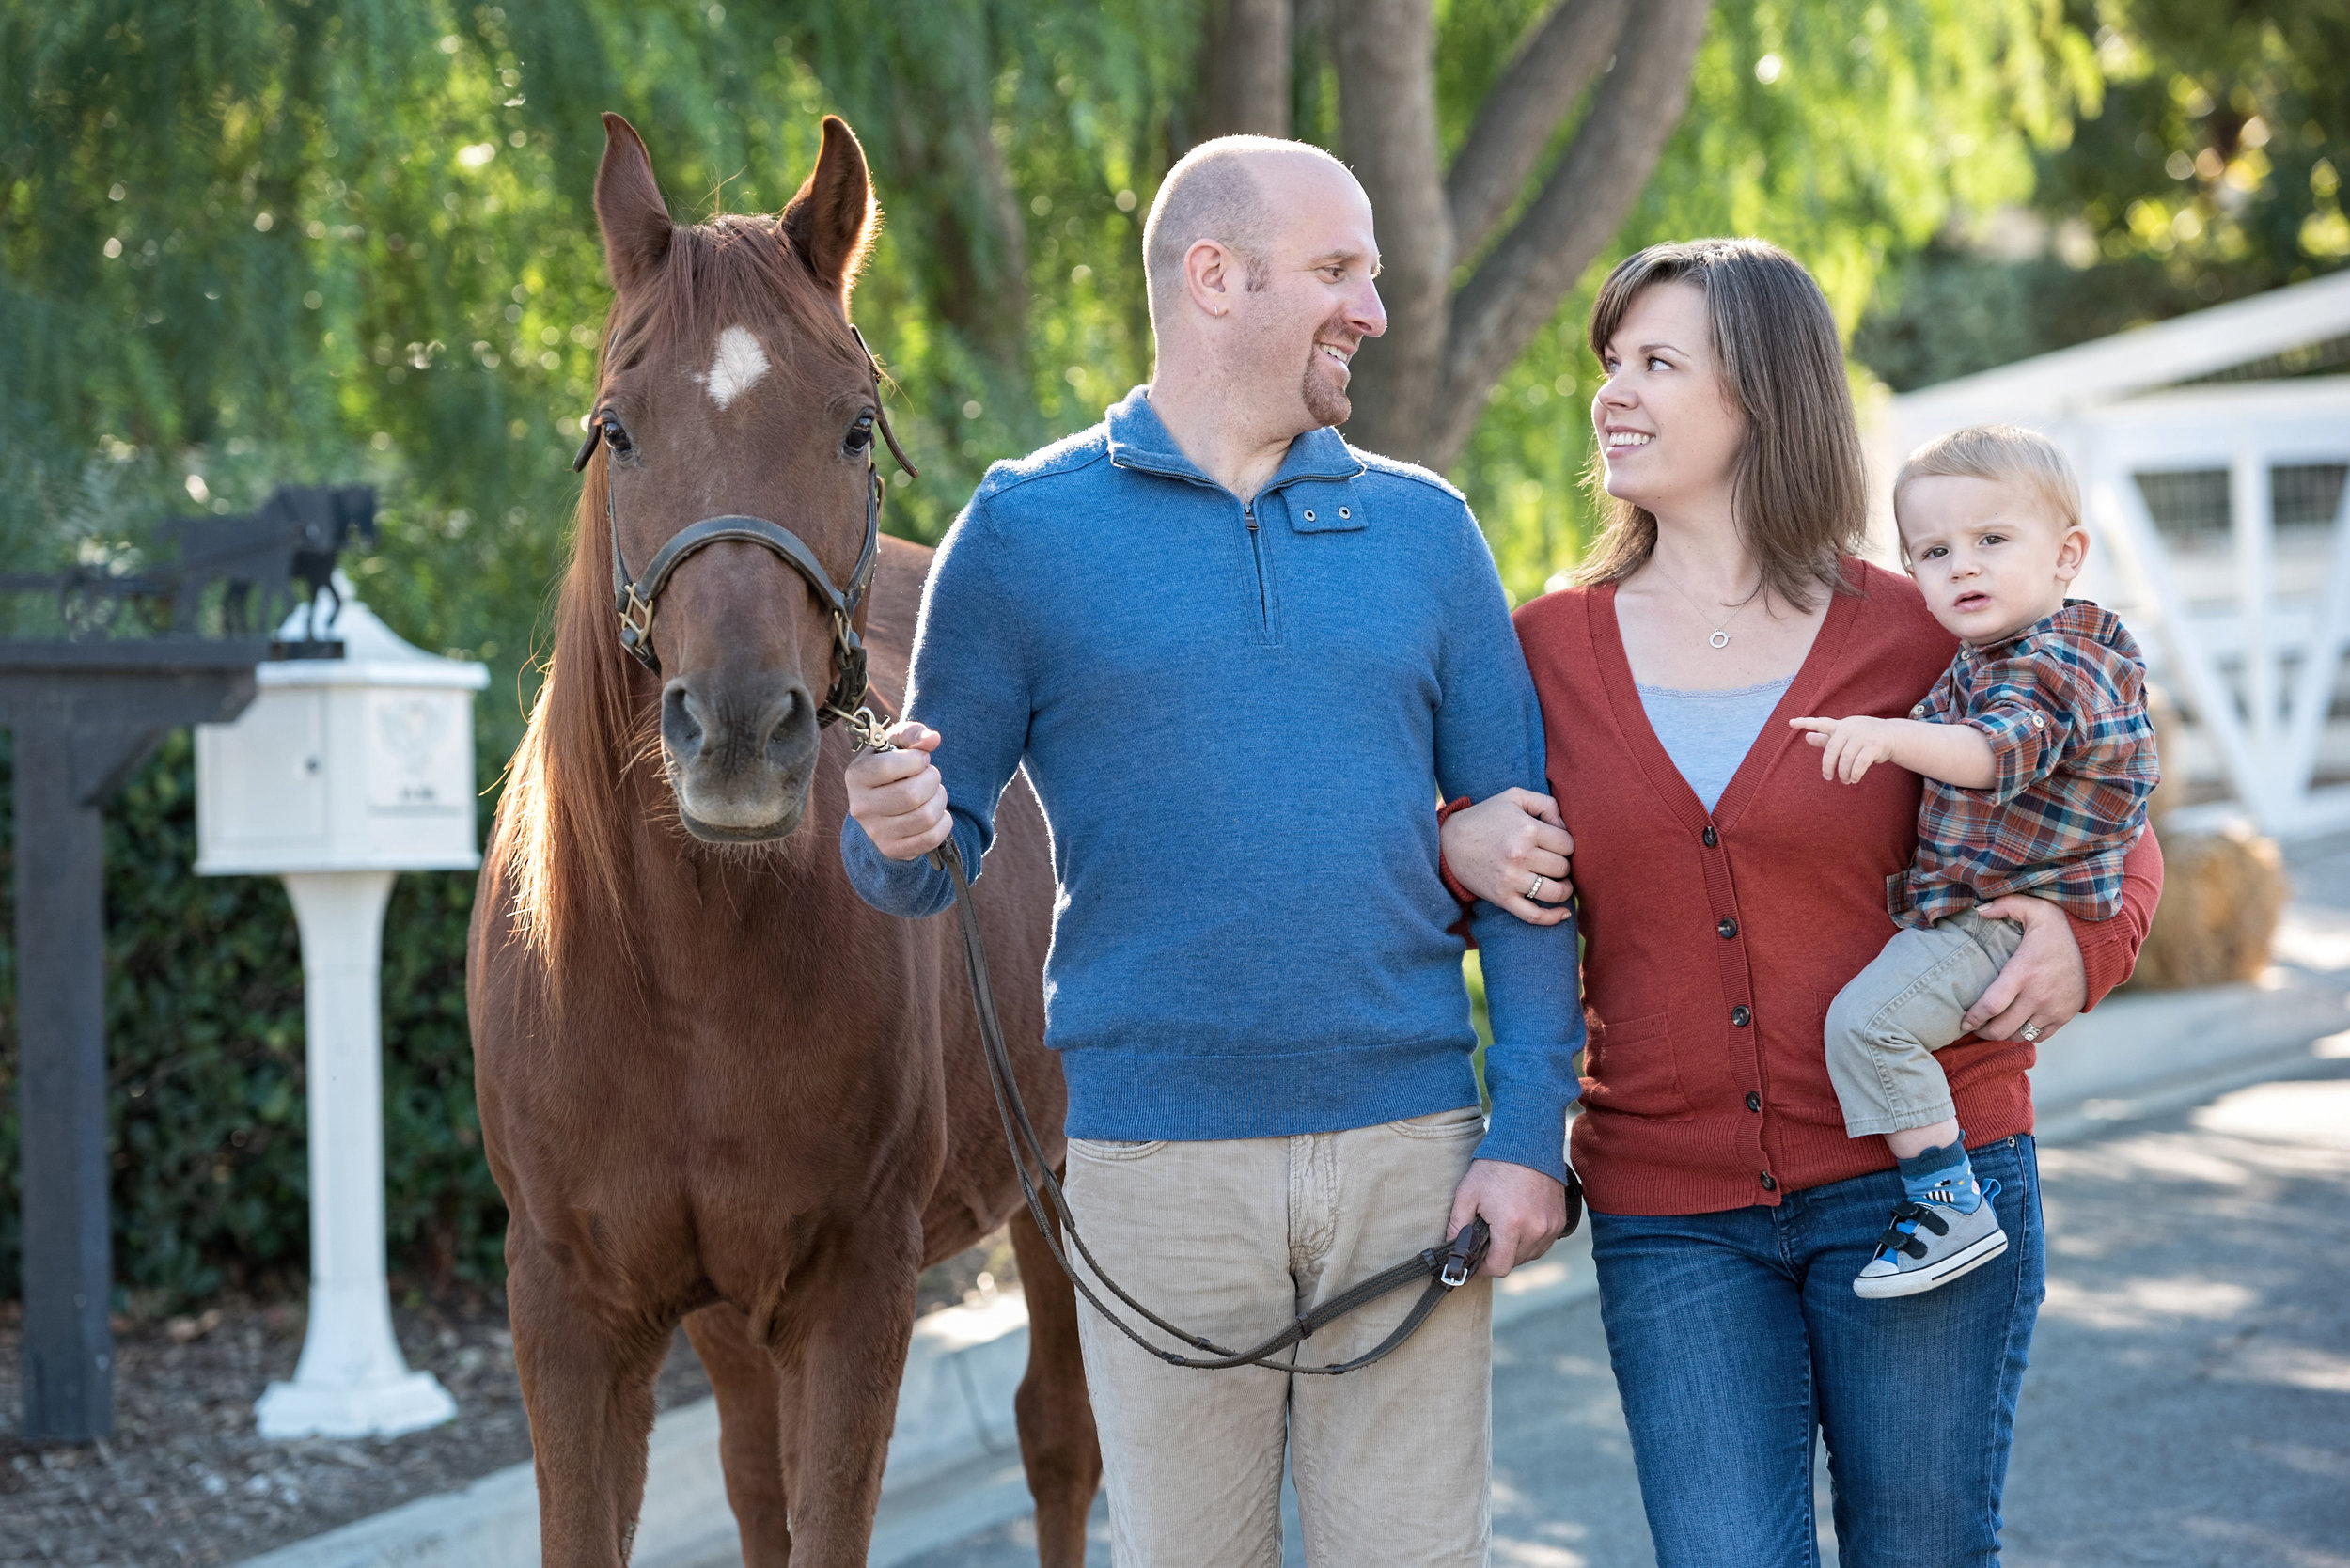 Family of three and their horse